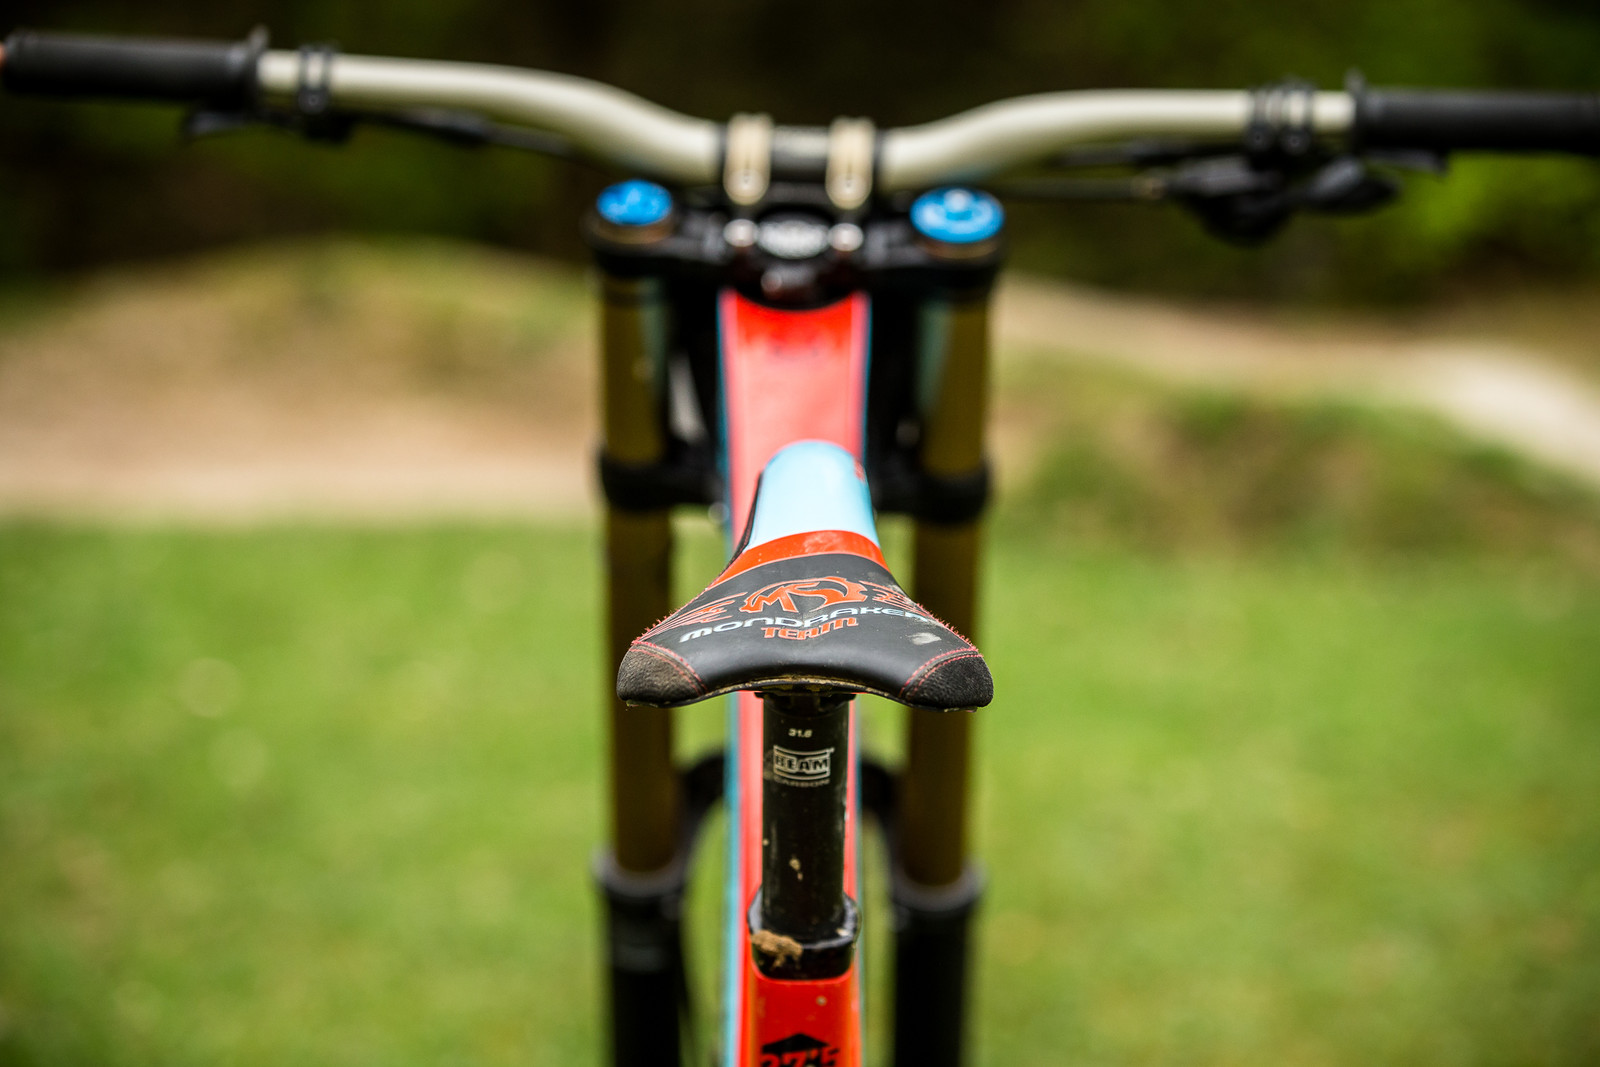 SDG I-Beam Saddle and Post - WINNING BIKE - Laurie Greenland's Mondraker Summum - Mountain Biking Pictures - Vital MTB